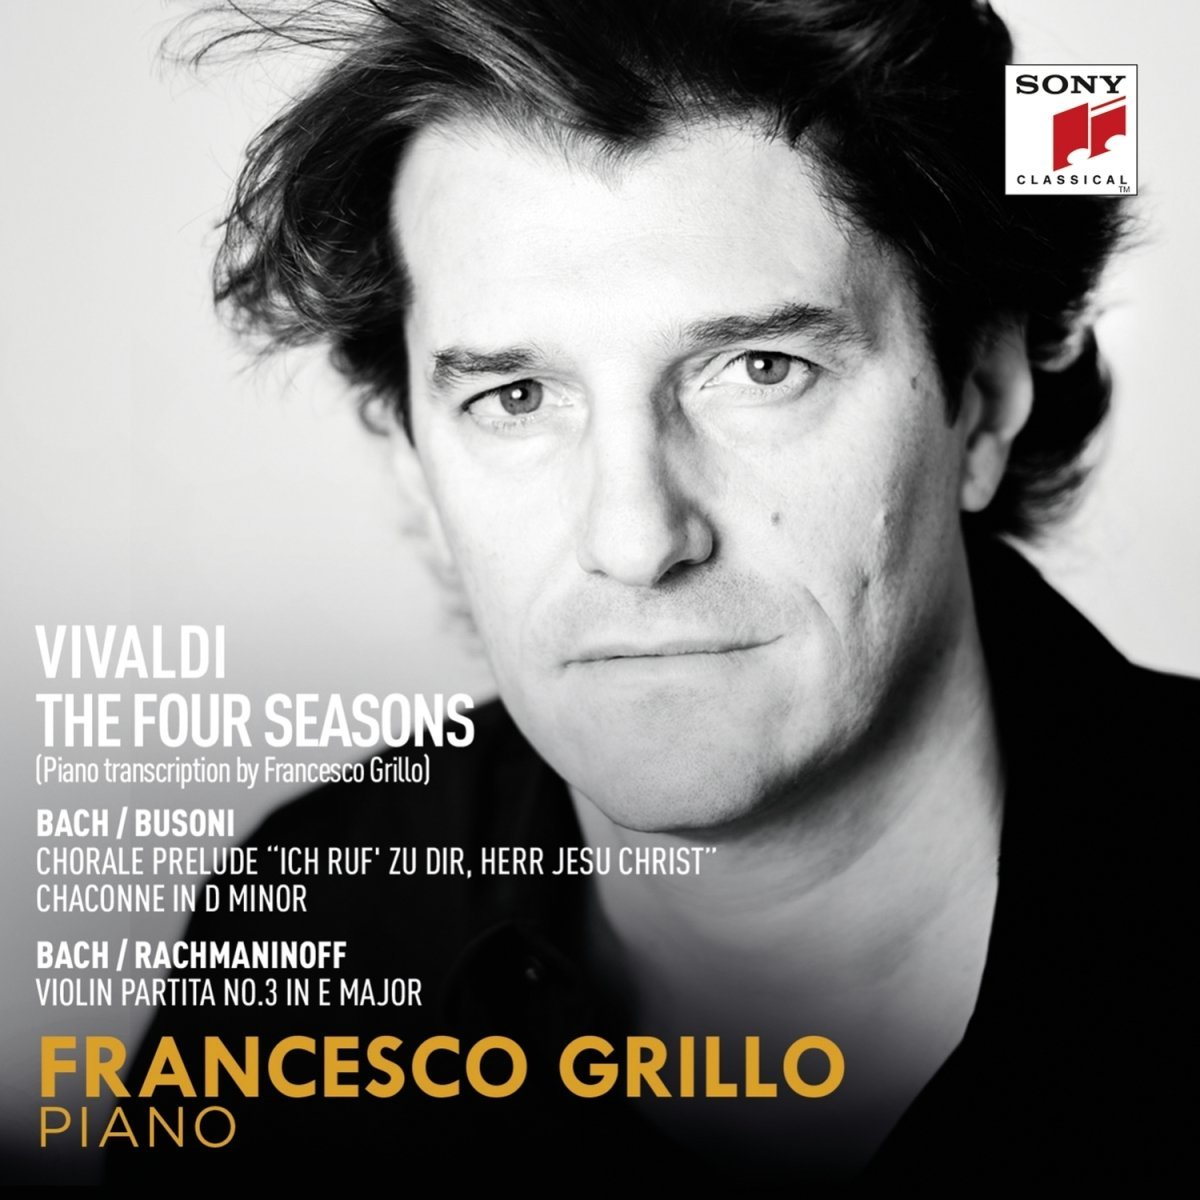 The Four Seasons Francesco Grillo